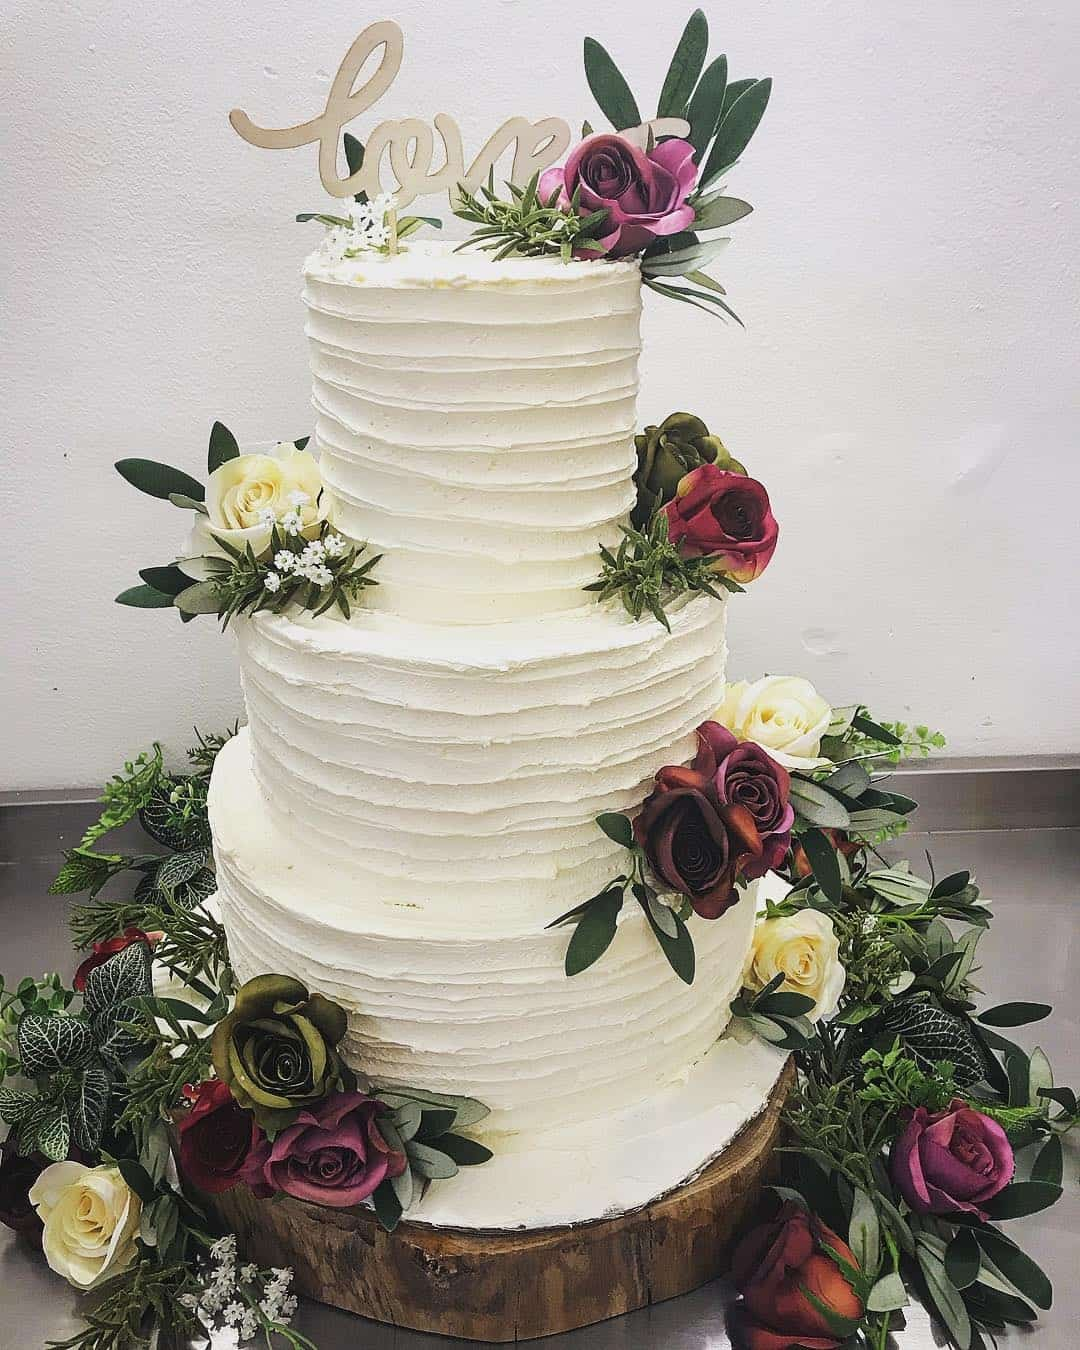 Vegan And Gluten Free Wedding Cake Ideas Alternative: Scottish Wedding Venue & Supplier